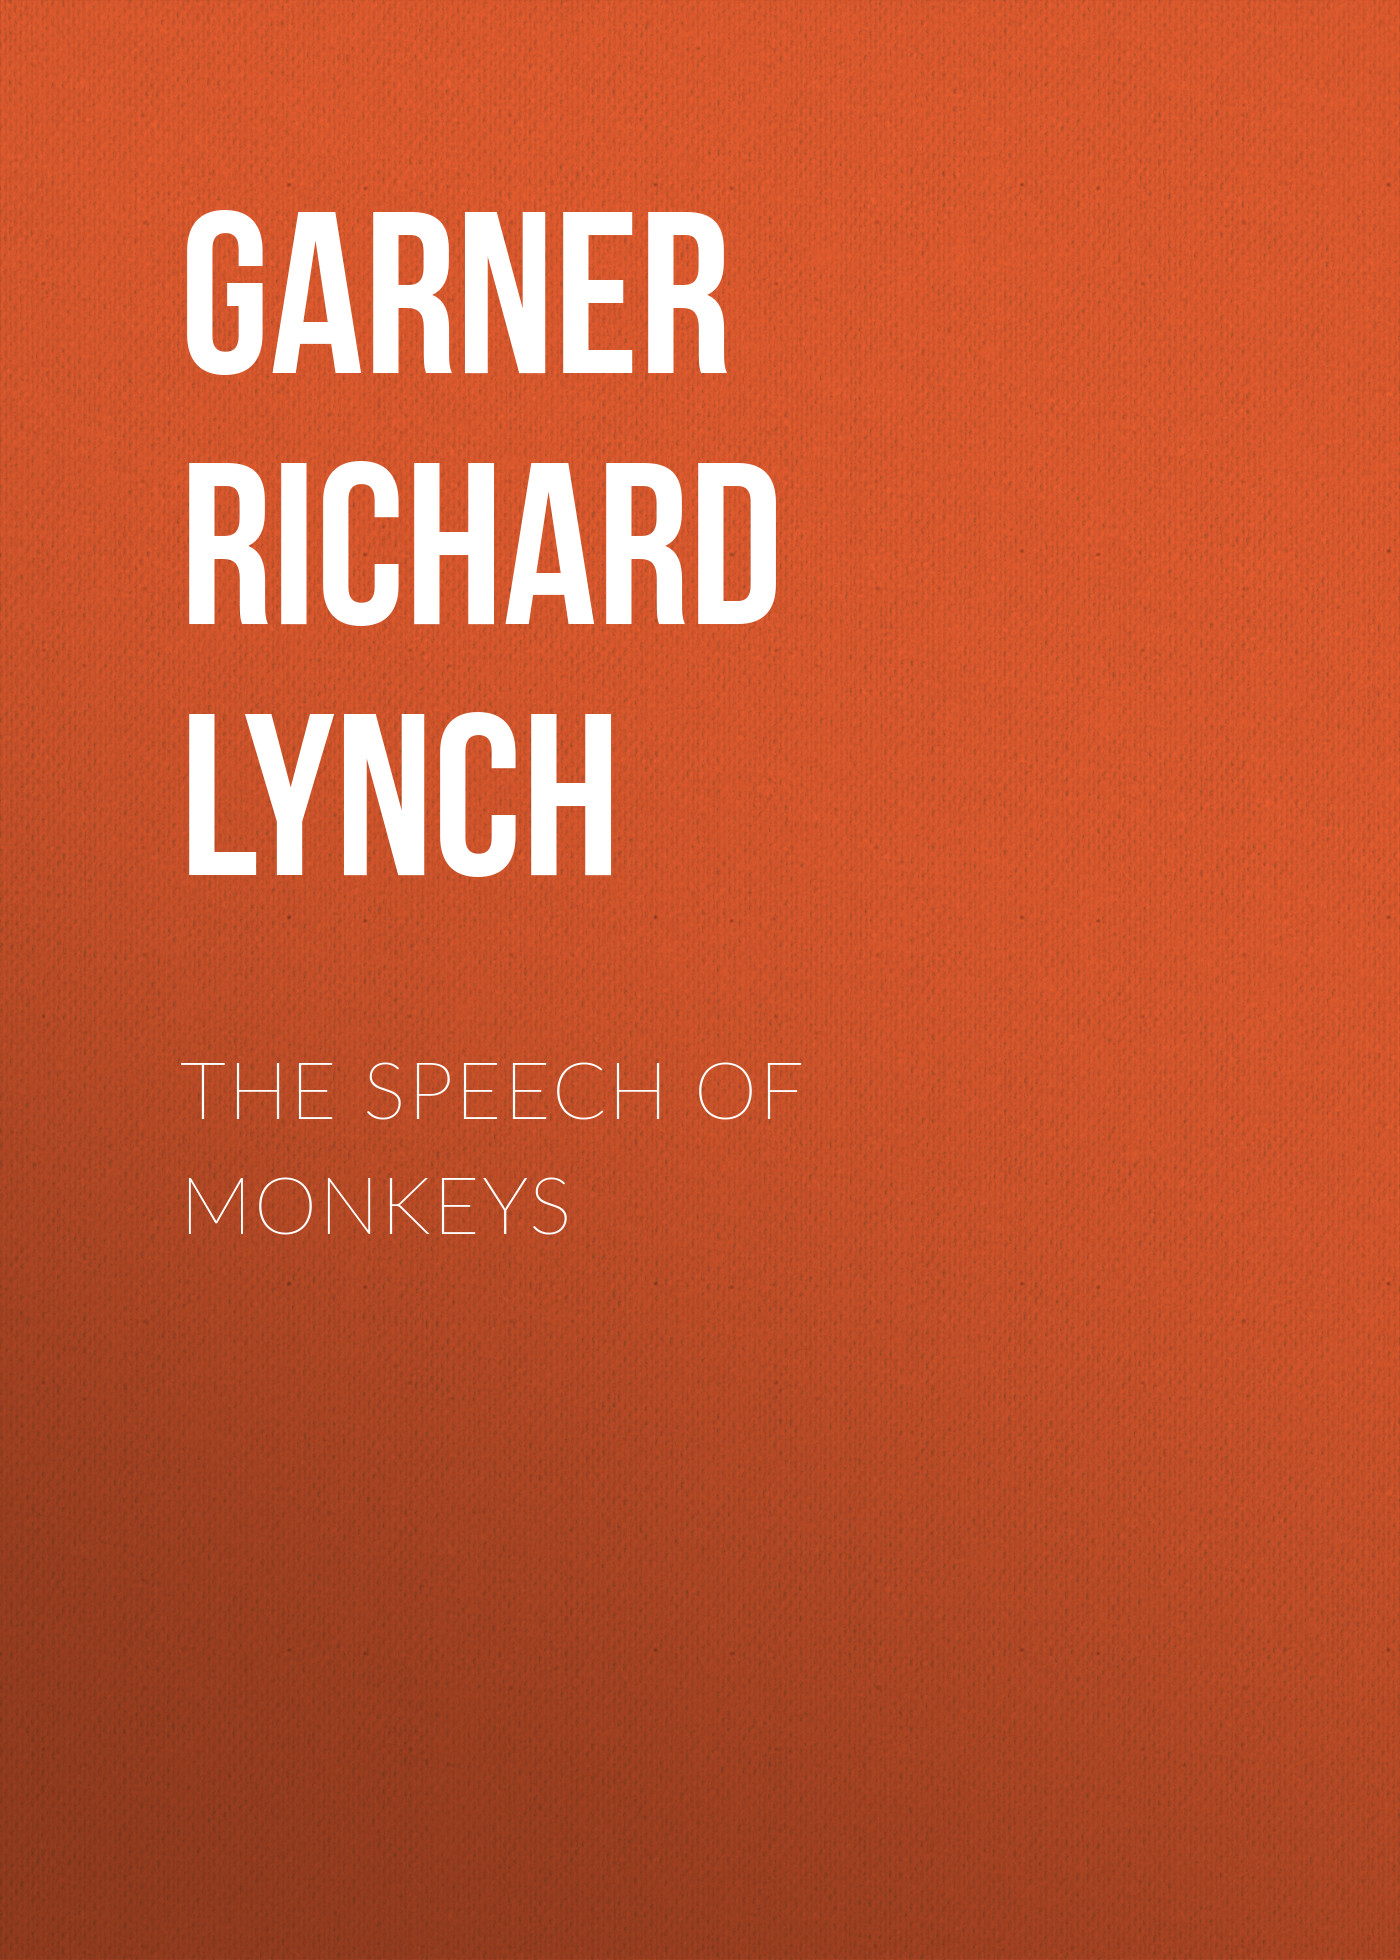 Garner Richard Lynch The Speech of Monkeys